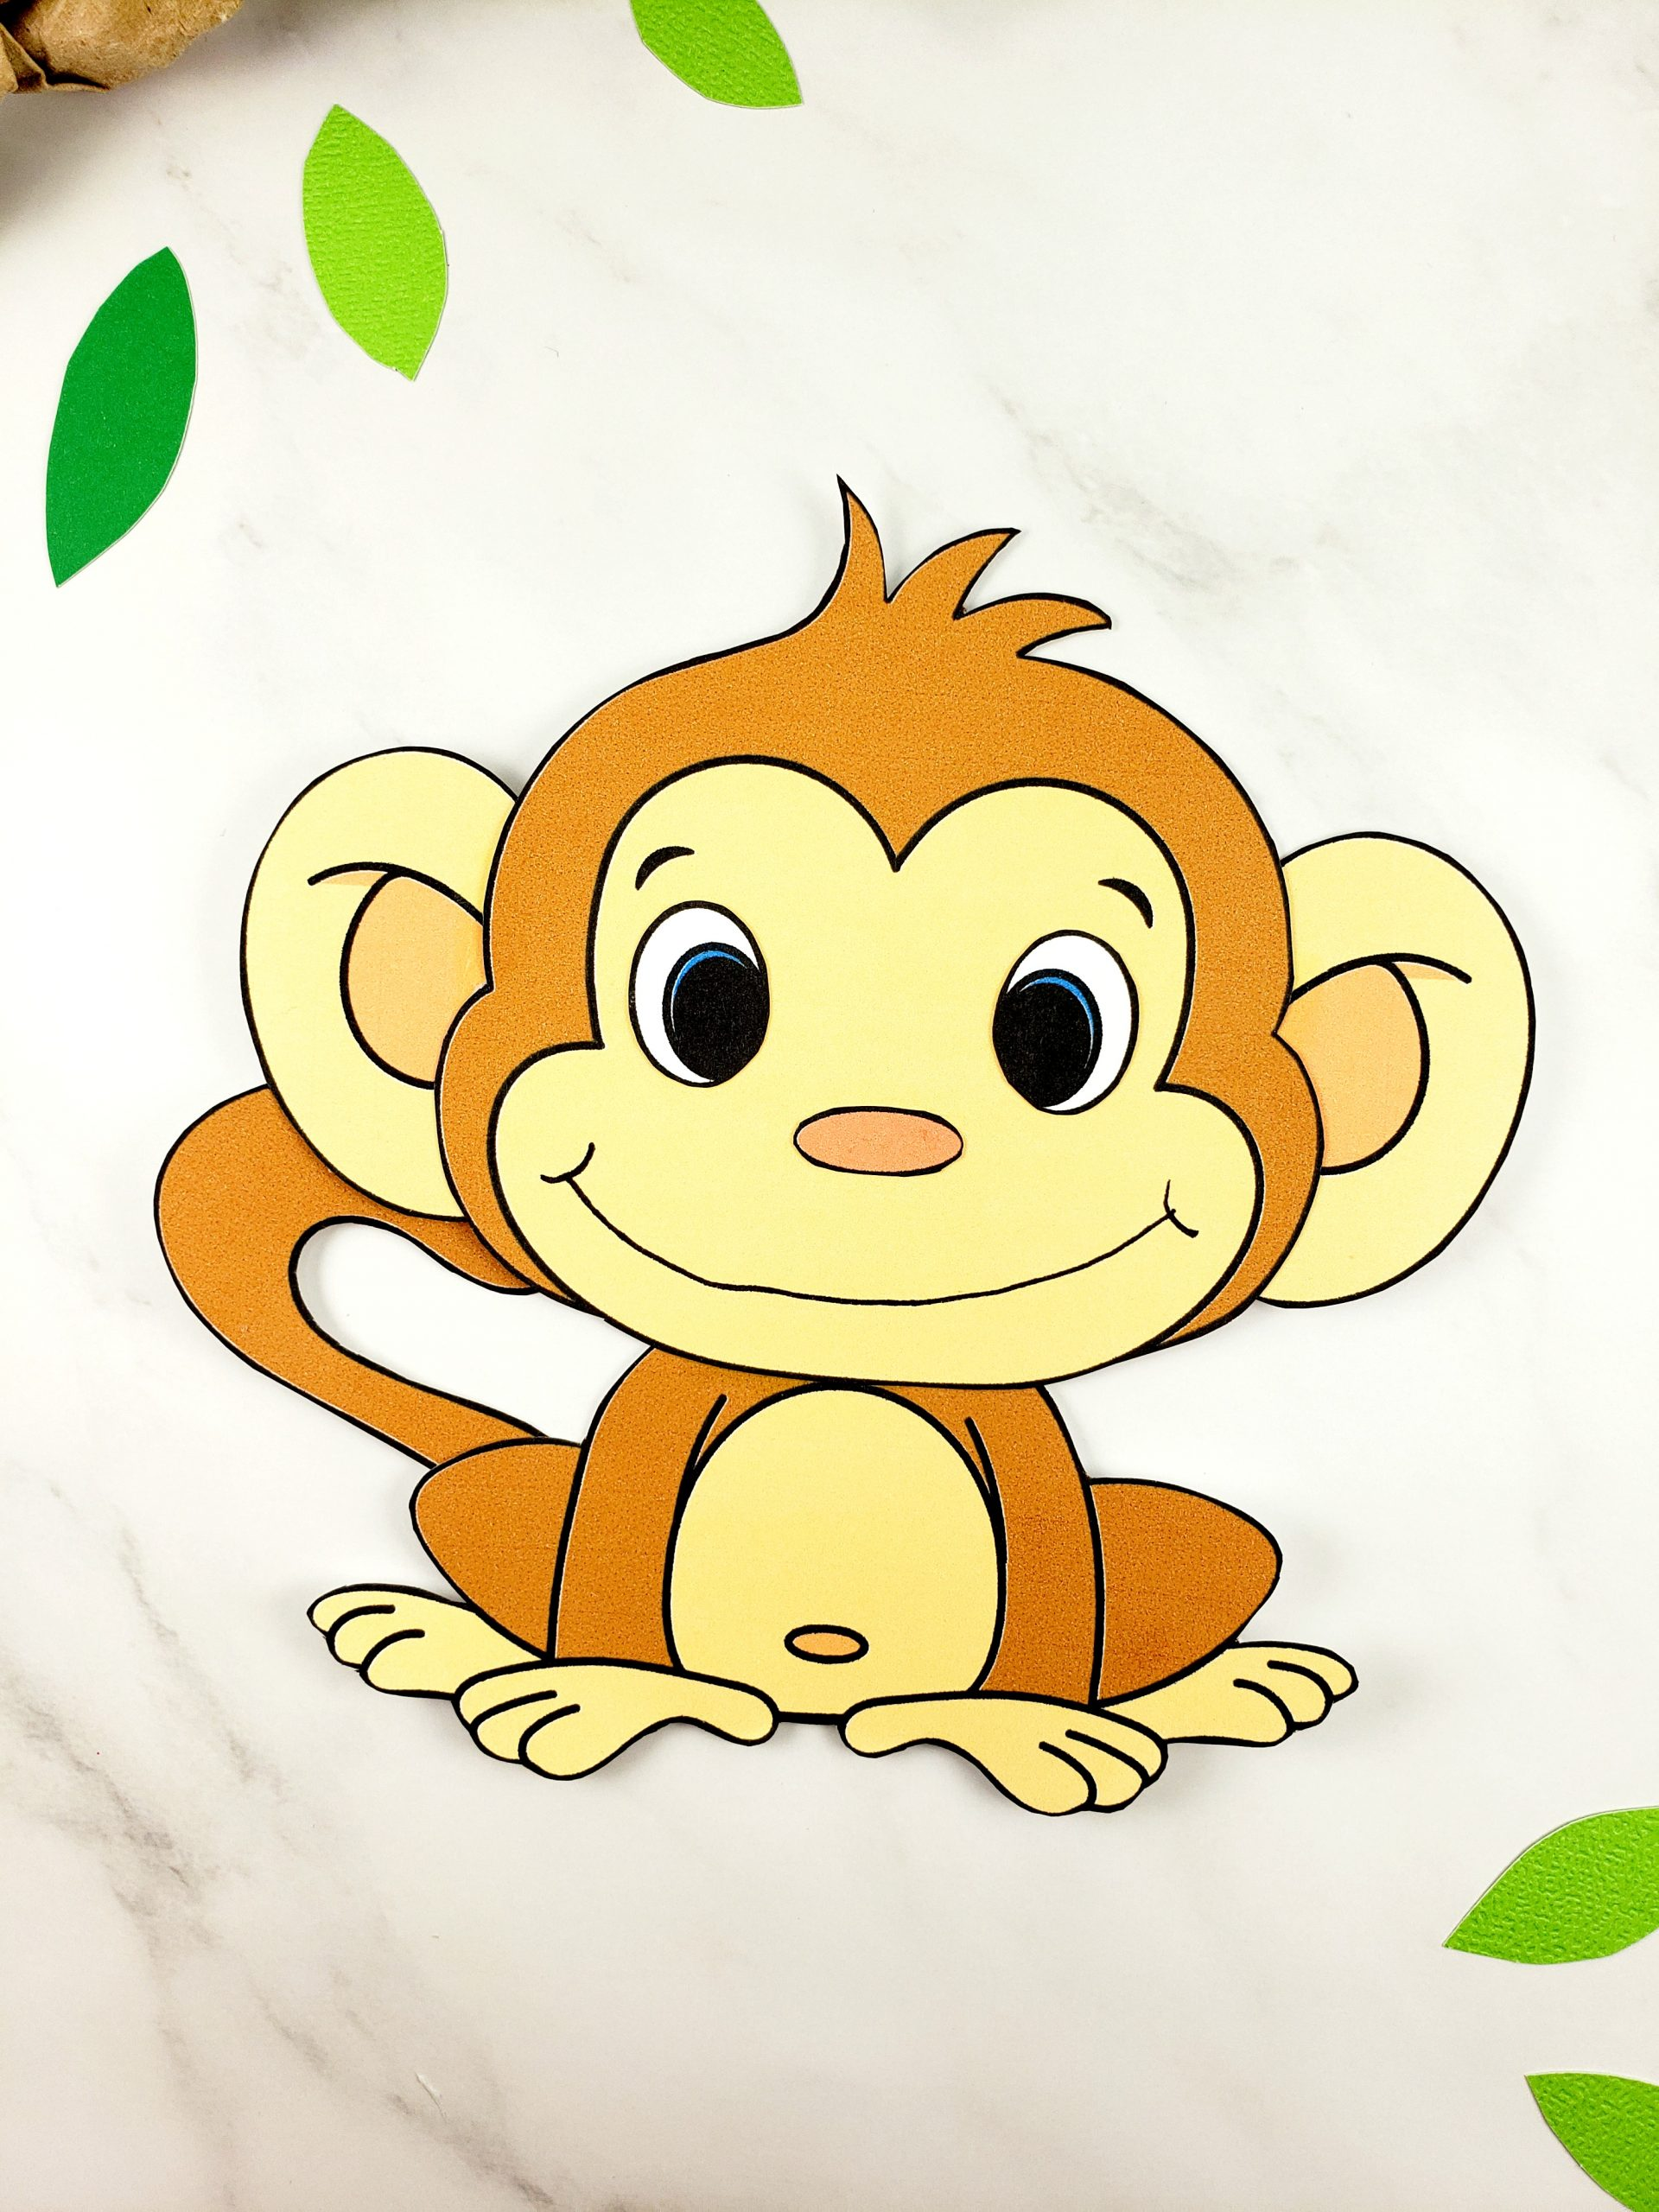 Free Printable Build a monkey craft for kids, preschoolers and toddlers